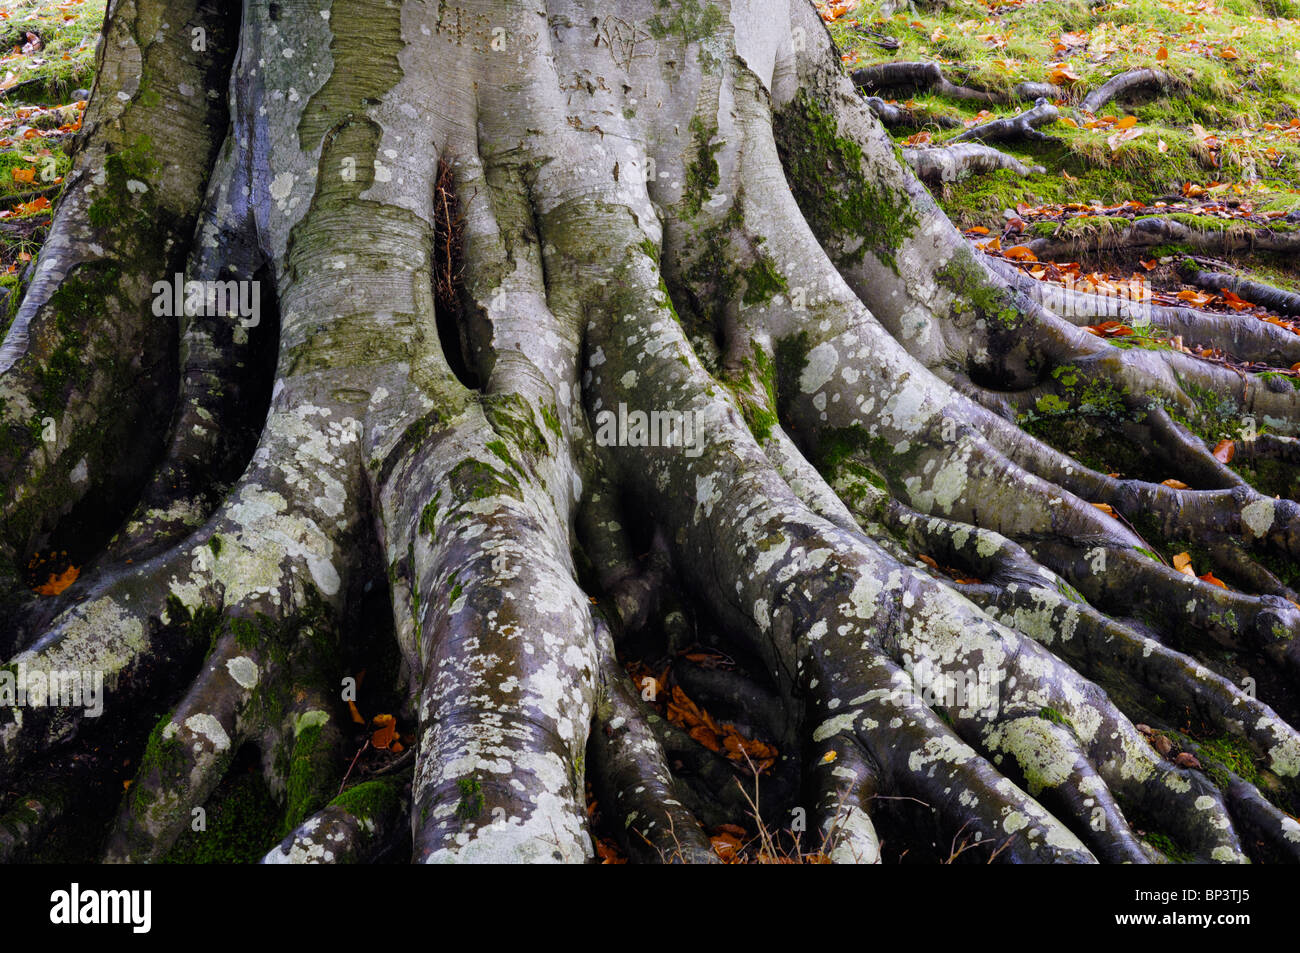 The roots of a beech tree in woodland at Grasmere in The Lake District National Park Cumbria, England. - Stock Image